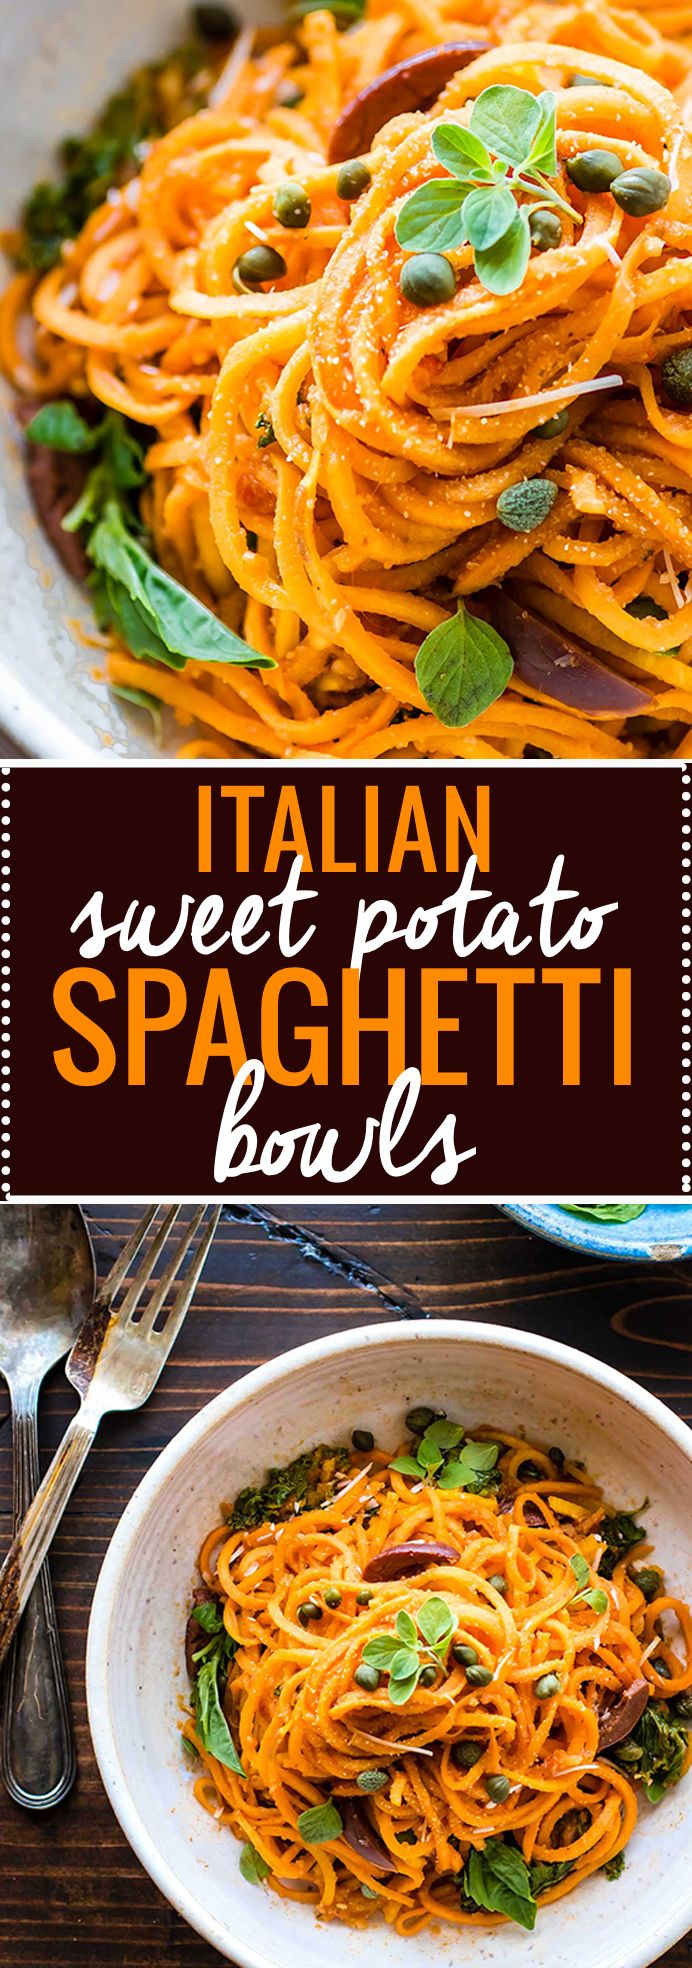 Snappy Italian Sweet Potato Spaghetti made with spiralized sweet potatoes in zesty tomato sauce. This dish is easy to make to one pot with simple paleo/vegan friendly ingredients already in your pantry! Whip up these Italian Sweet Potato Spaghetti bowls in 20 minutes for a quick yet wholesome meal. www.cottercrunch.com